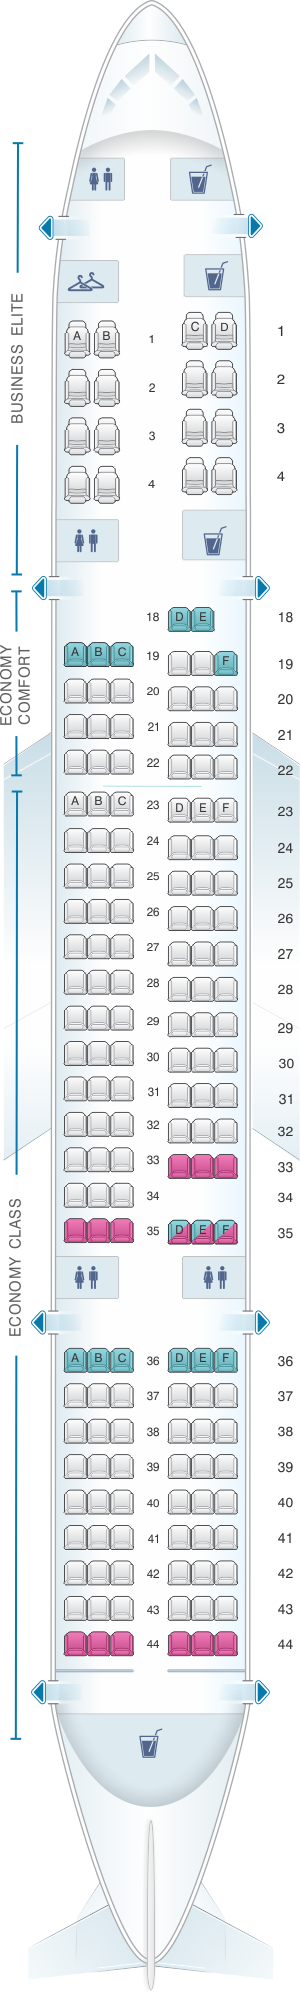 Seat map for Delta Airlines Boeing B757 200 (75E)